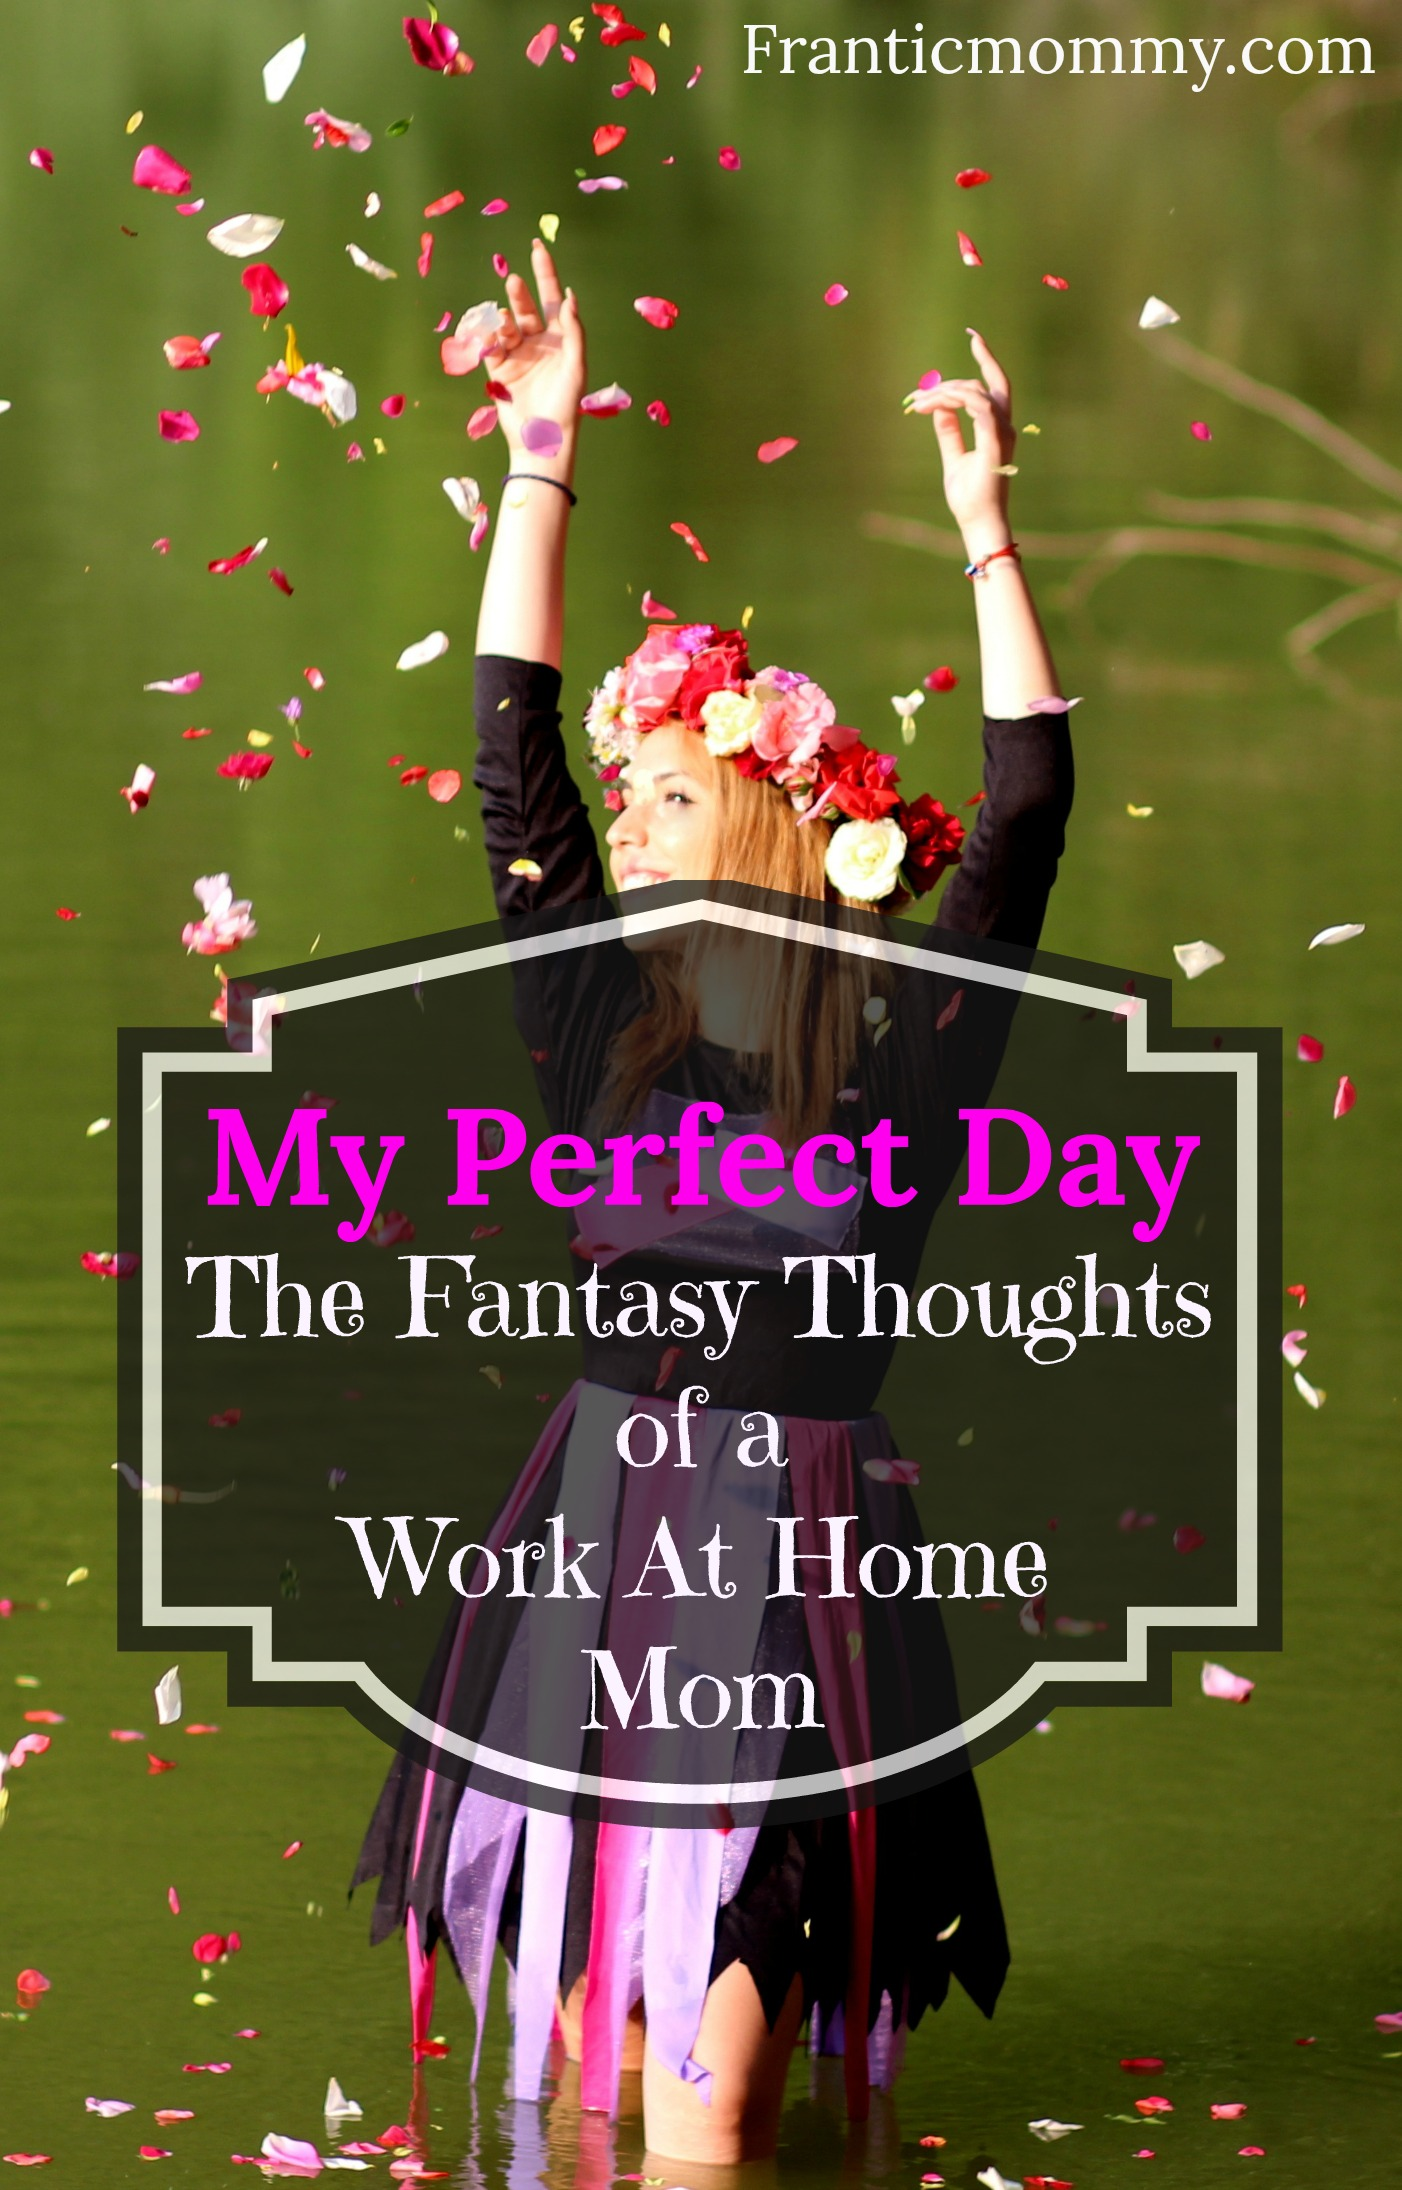 My Perfect Day-The Fantasy Thoughts of a Work At Home Mom